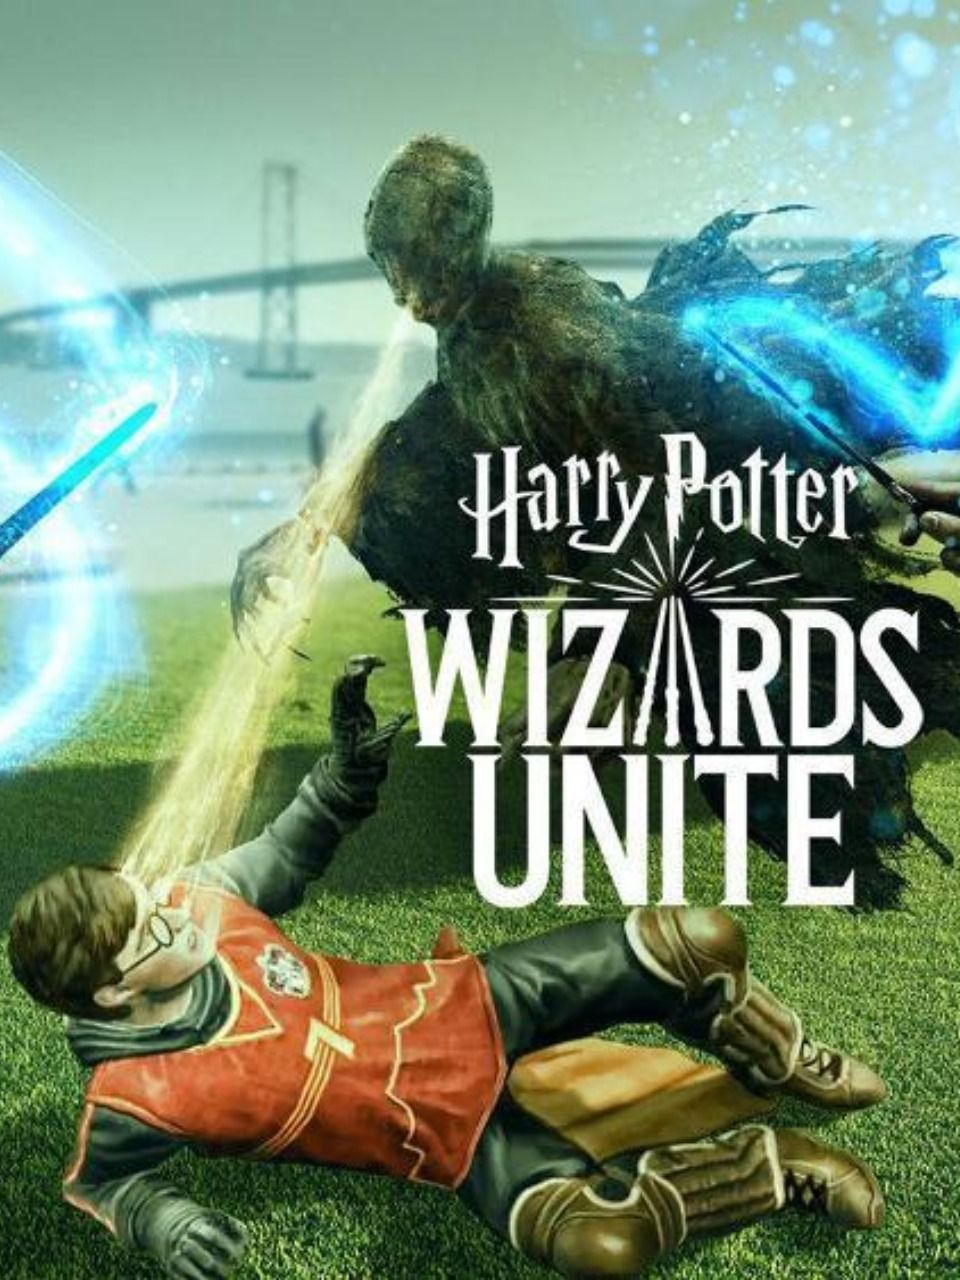 Harry Potter Wizards Unite Gets A Disappointing Debut Harry Potter Niantic Harry Potter Wizard